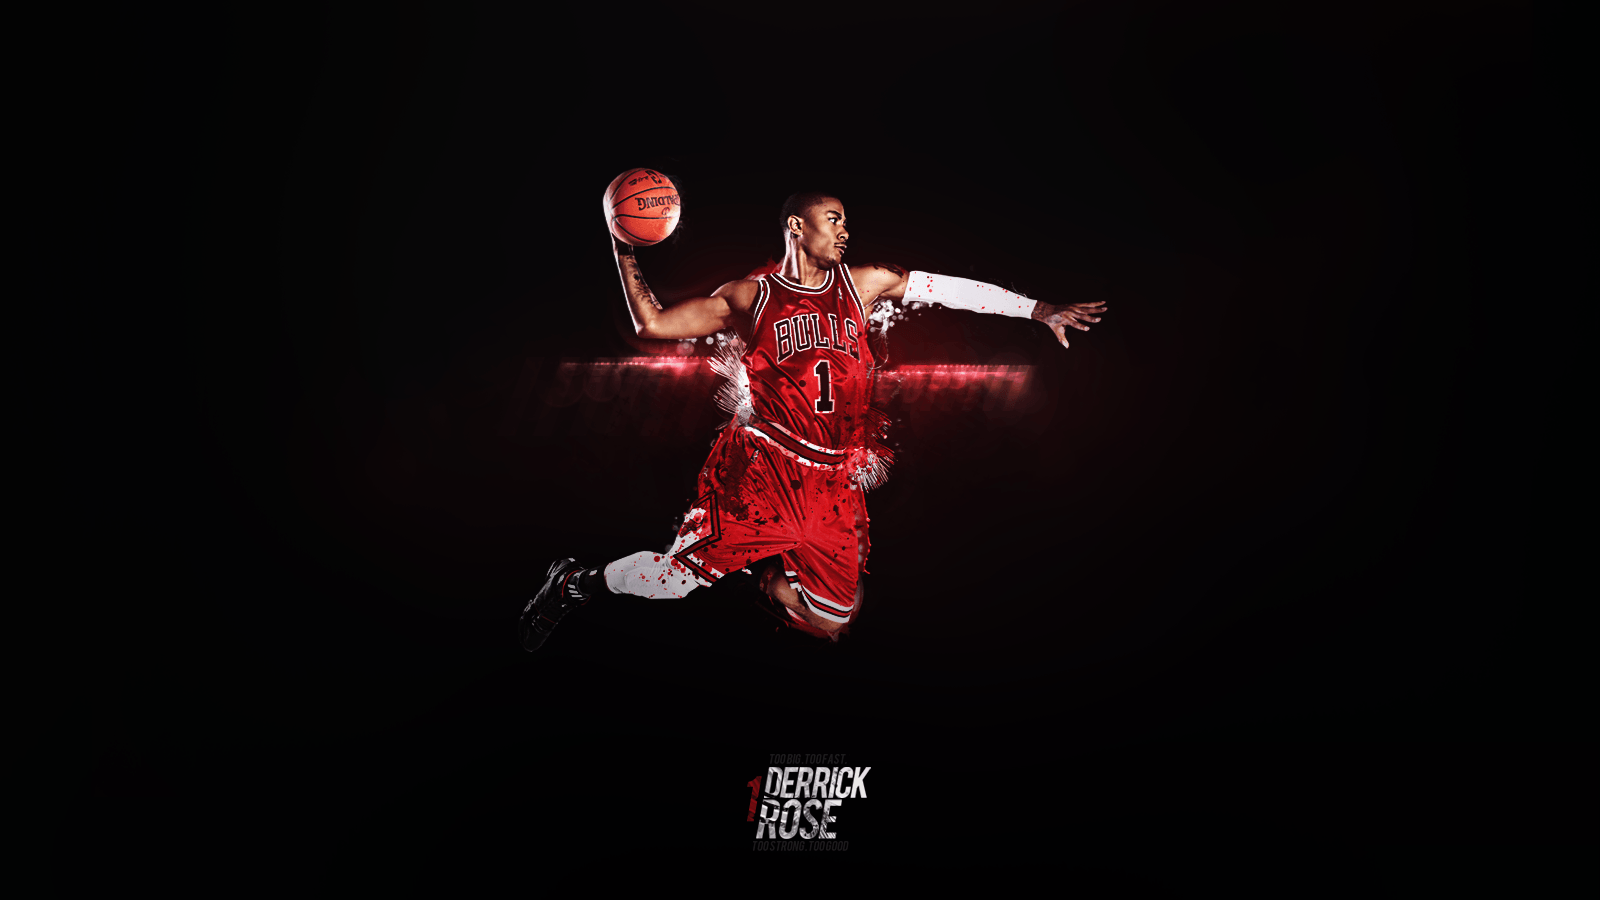 derrick rose wallpaper iphone - photo #28